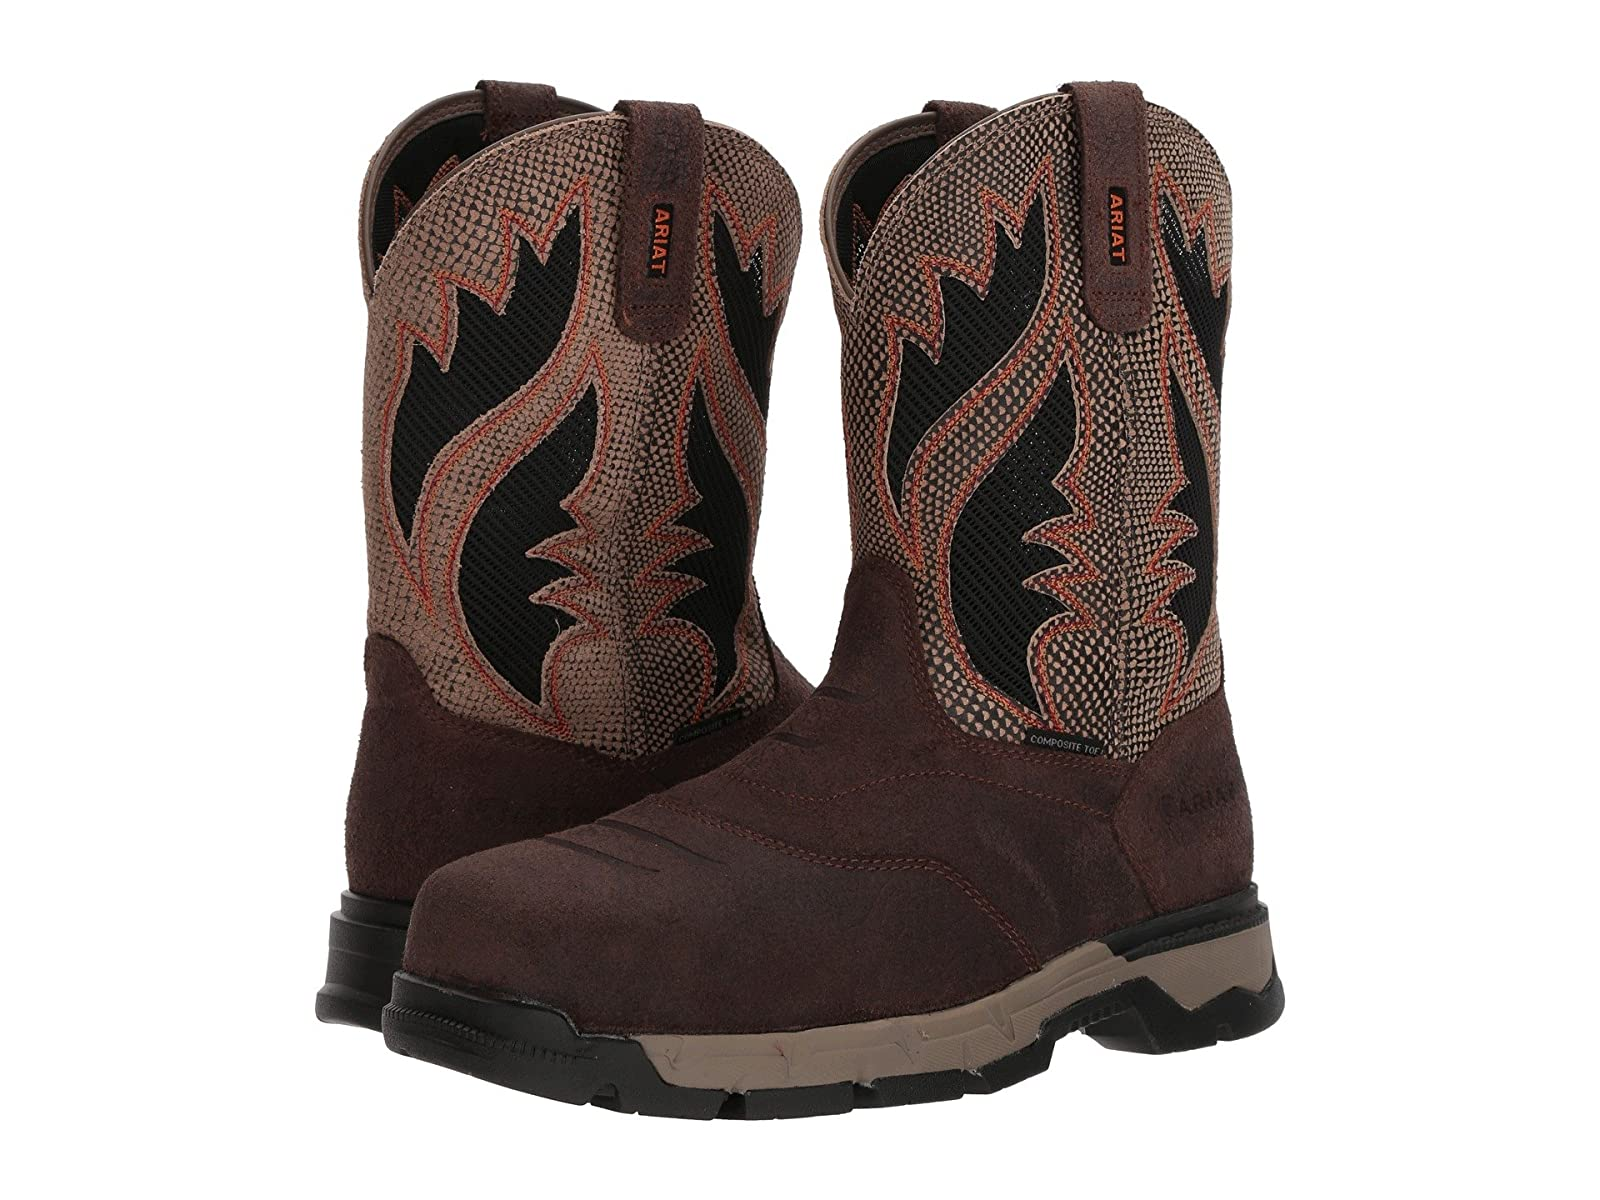 Ariat Rebar Flex Western Venttek Composite ToeSelling fashionable and eye-catching shoes